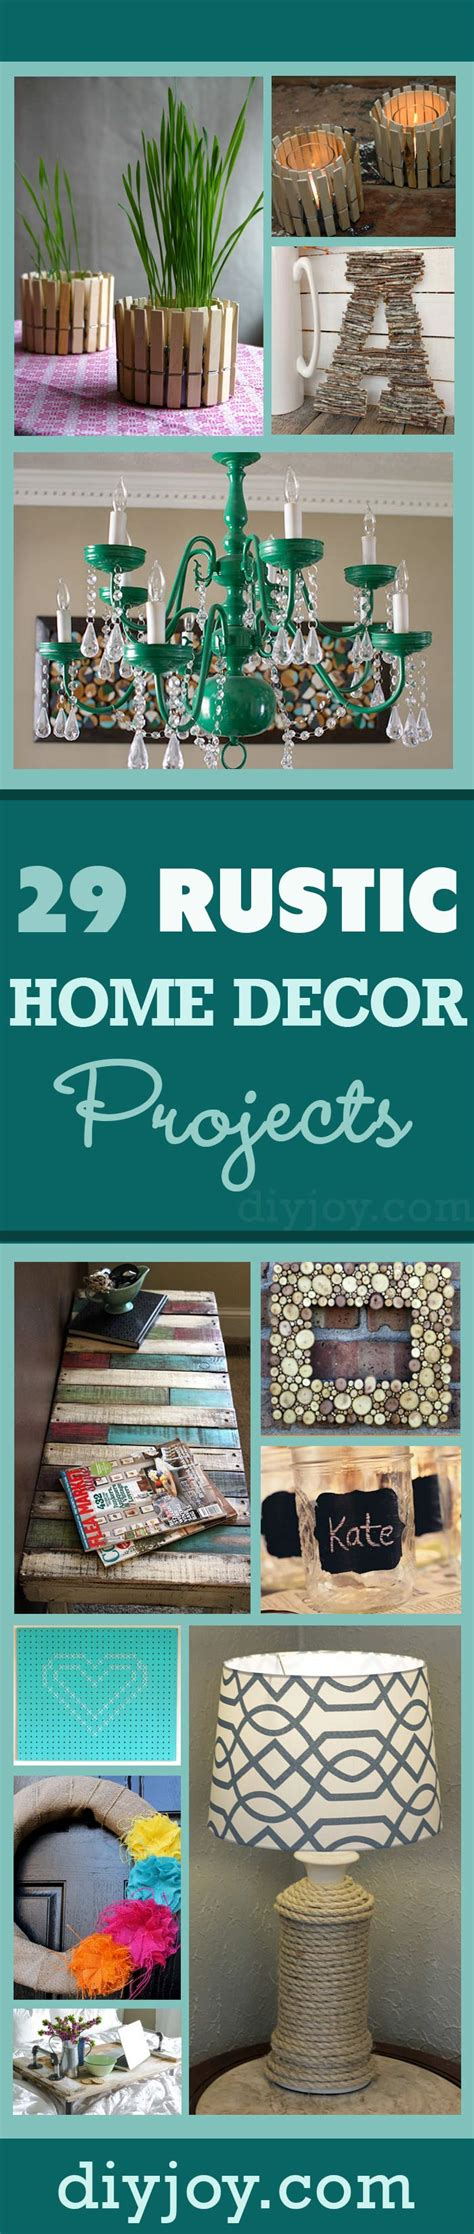 29 rustic diy home decor ideas page 3 of 6 diy